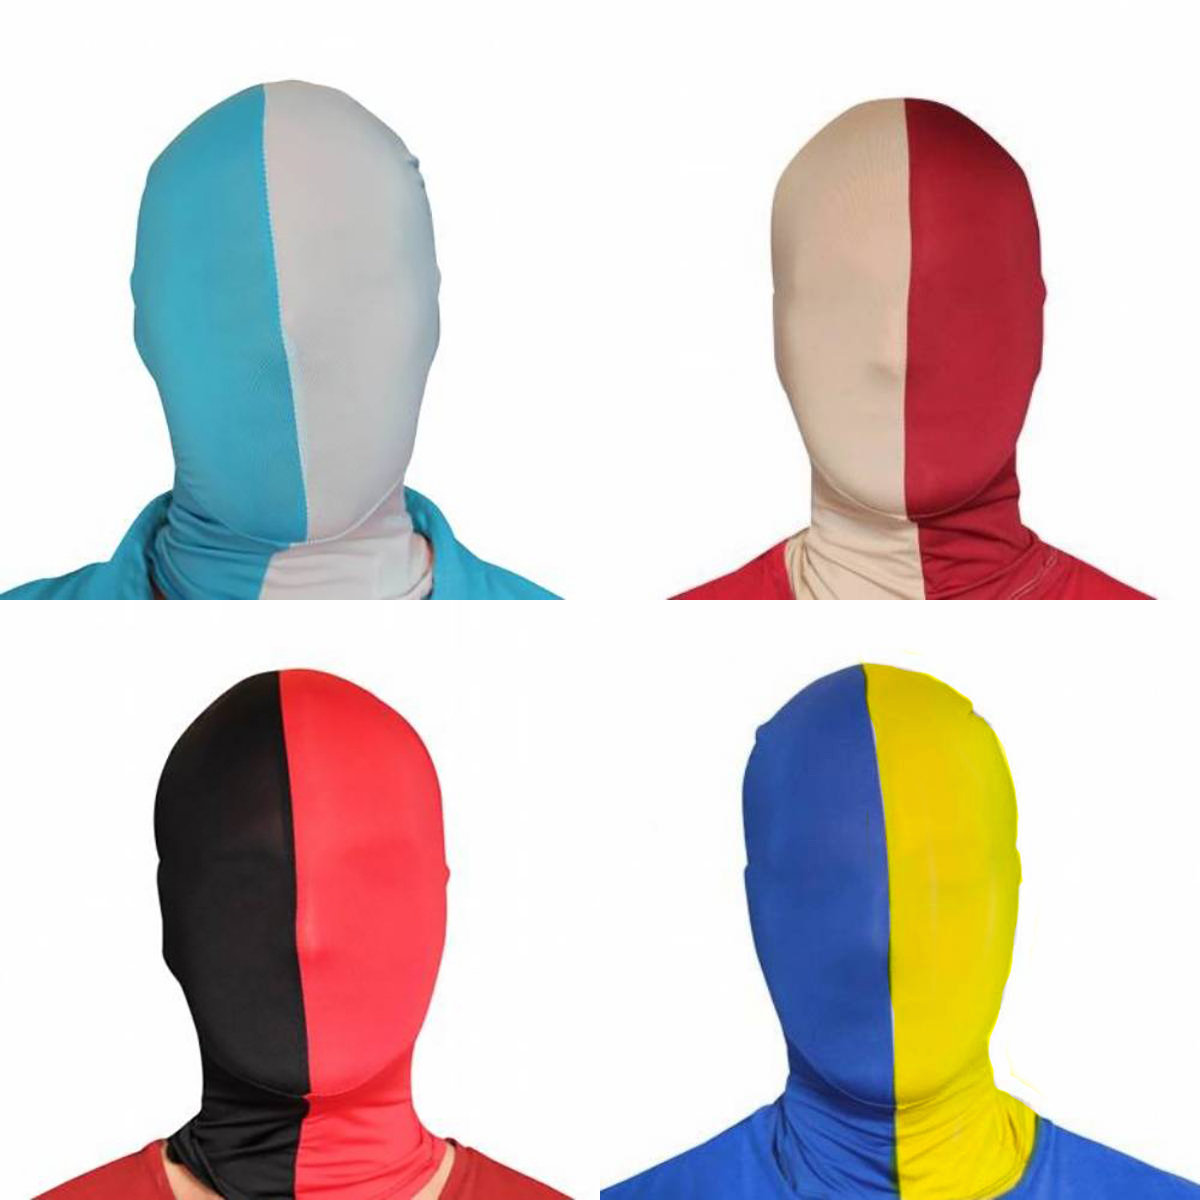 Morphsuit Bumbag 3 Colors Great for Fancy Dress Costume Bum Bag by Morphsuits